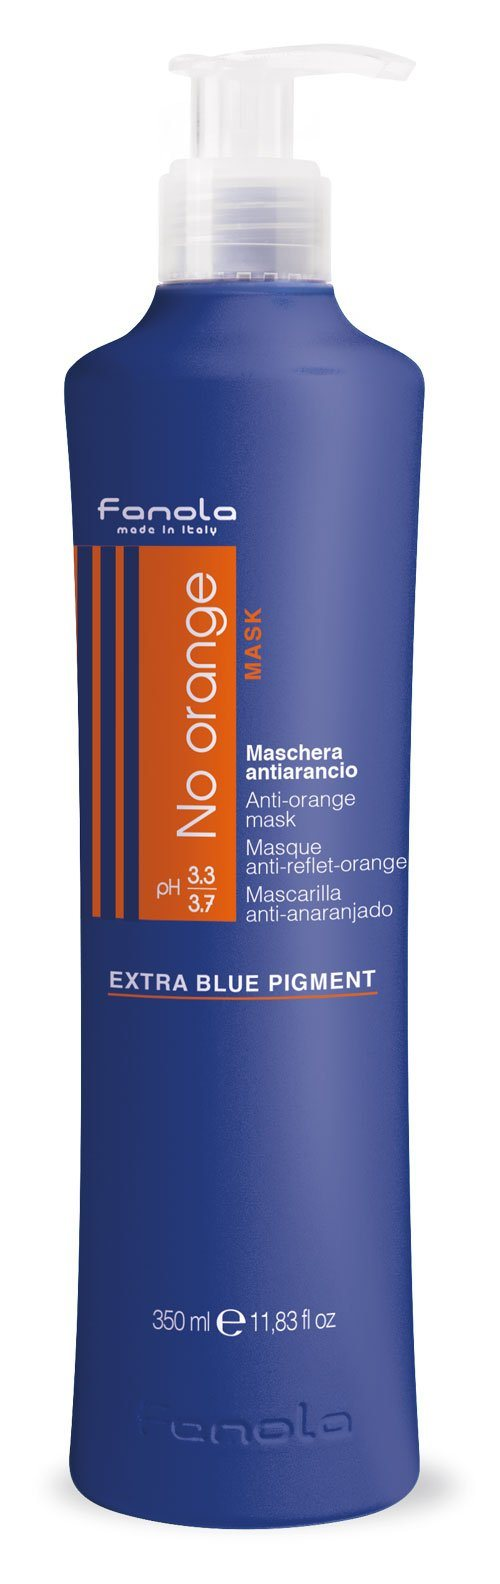 Fanola No Orange Shampoo or Mask Hair Shampoos Fanola Mask, 350 ml